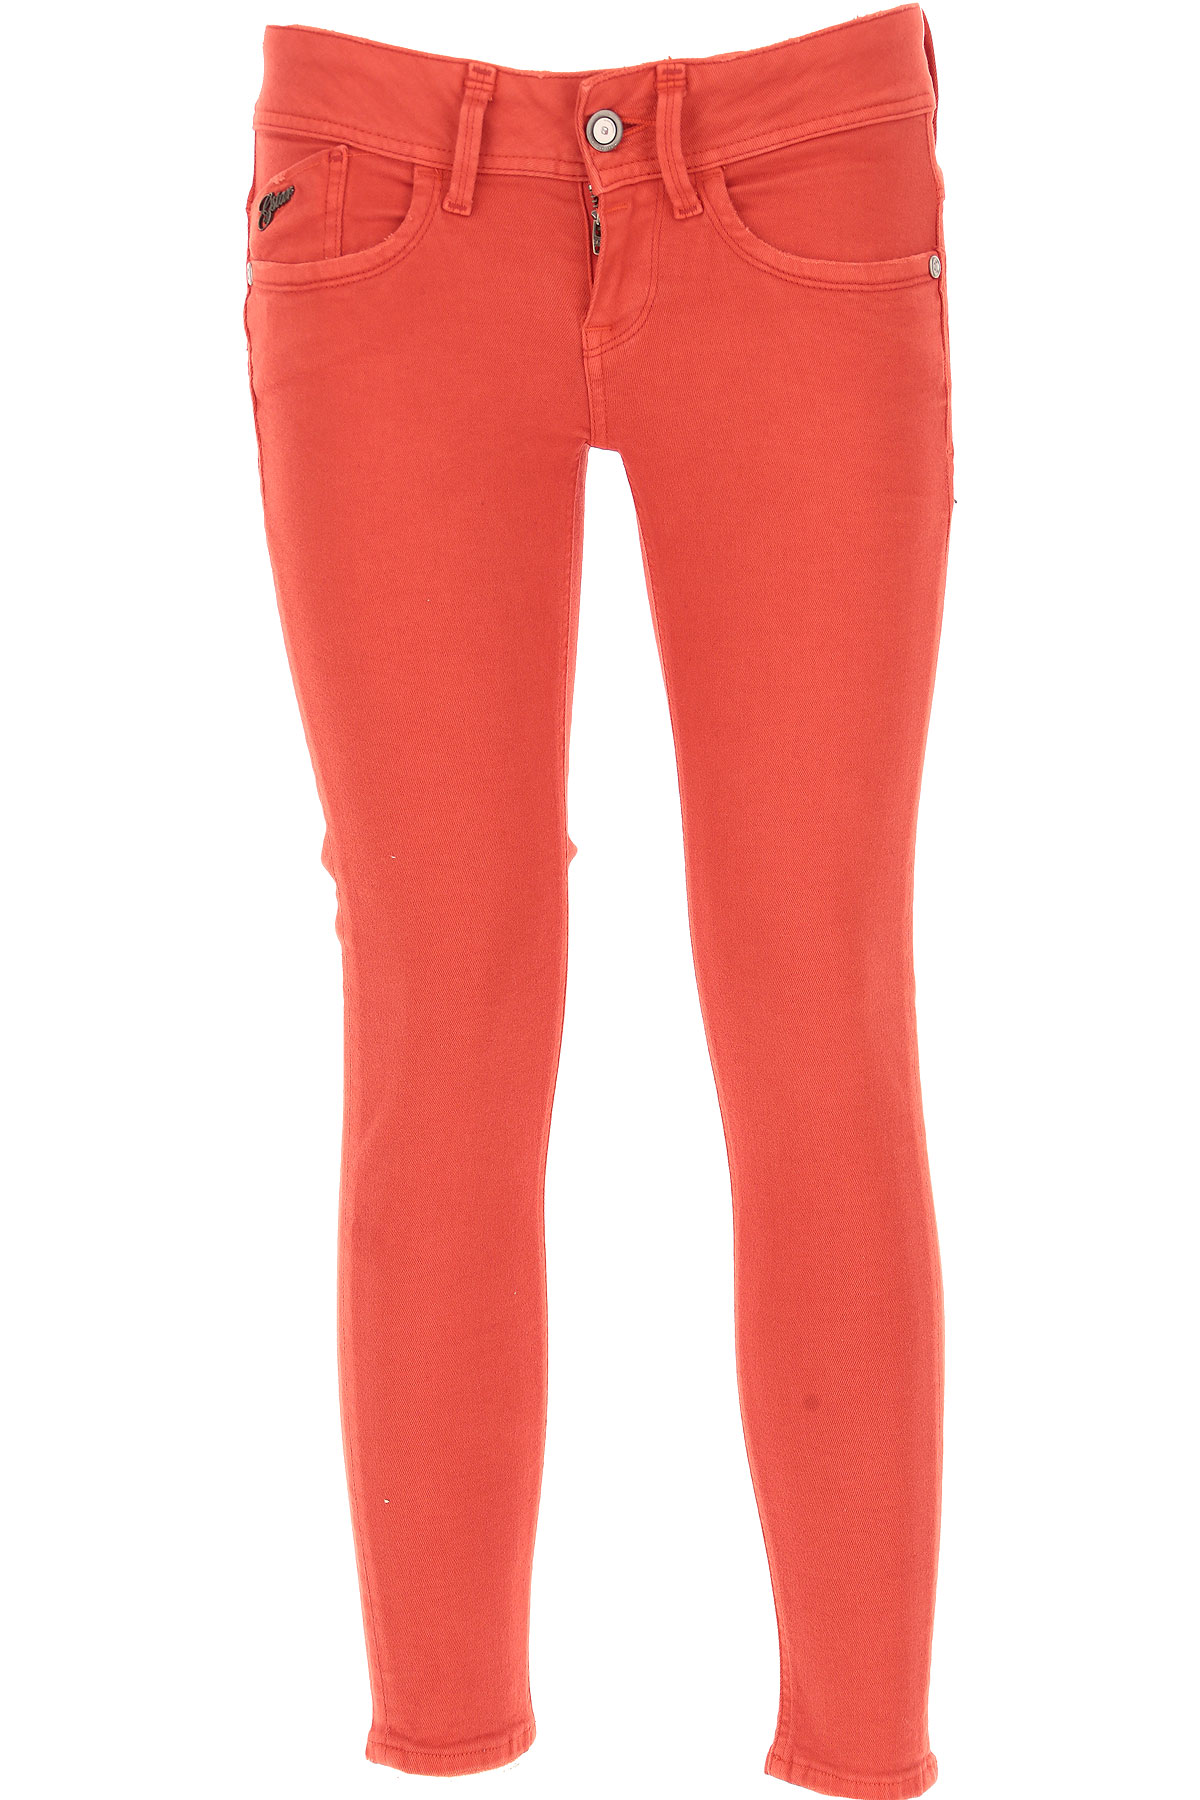 G-Star Jeans On Sale in Outlet, Red, Cotton, 2017, 26 30 32